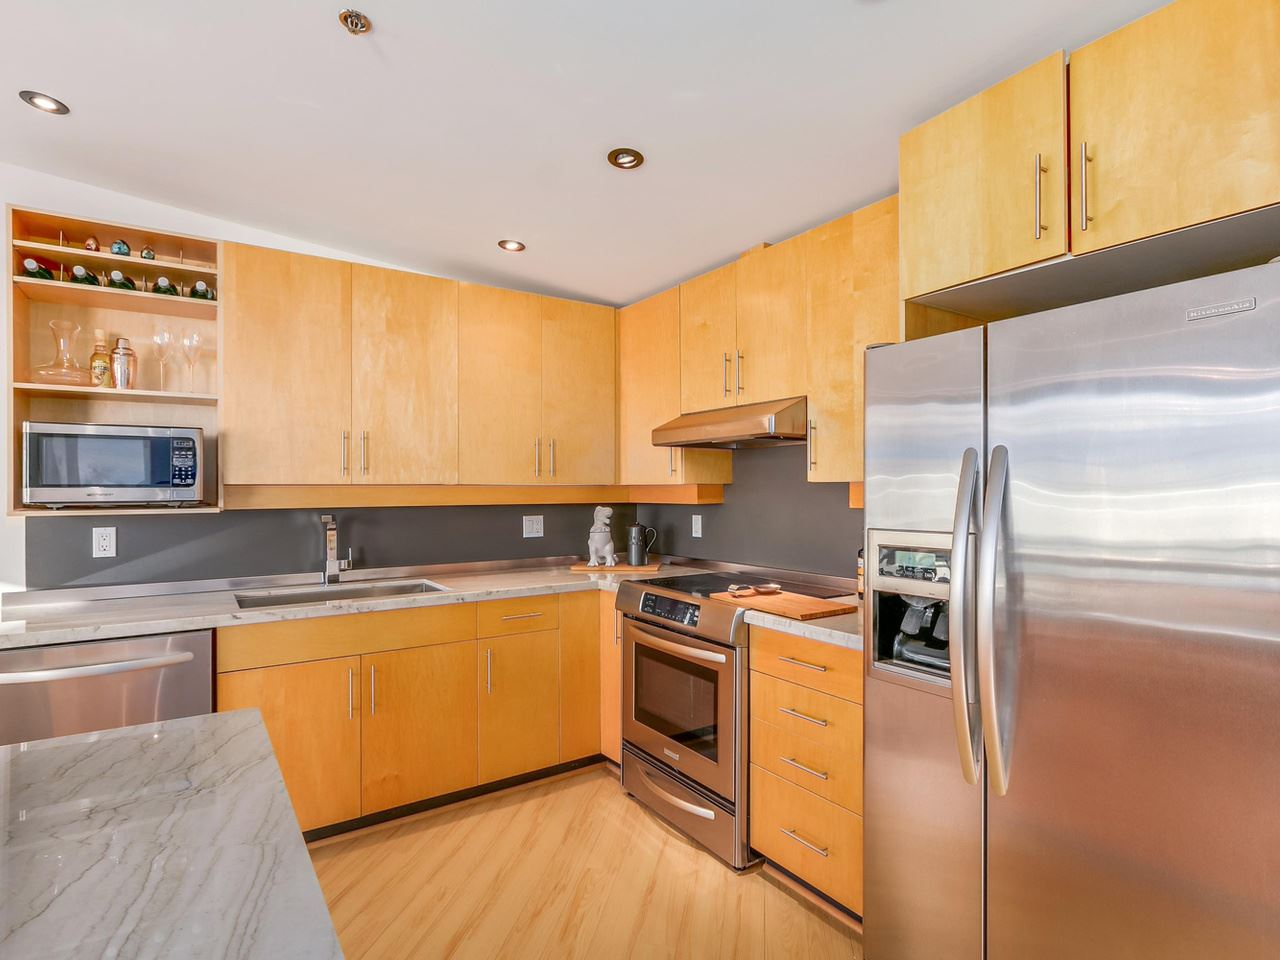 Photo 10: 511 549 COLUMBIA STREET in New Westminster: Downtown NW Condo for sale : MLS® # R2129468